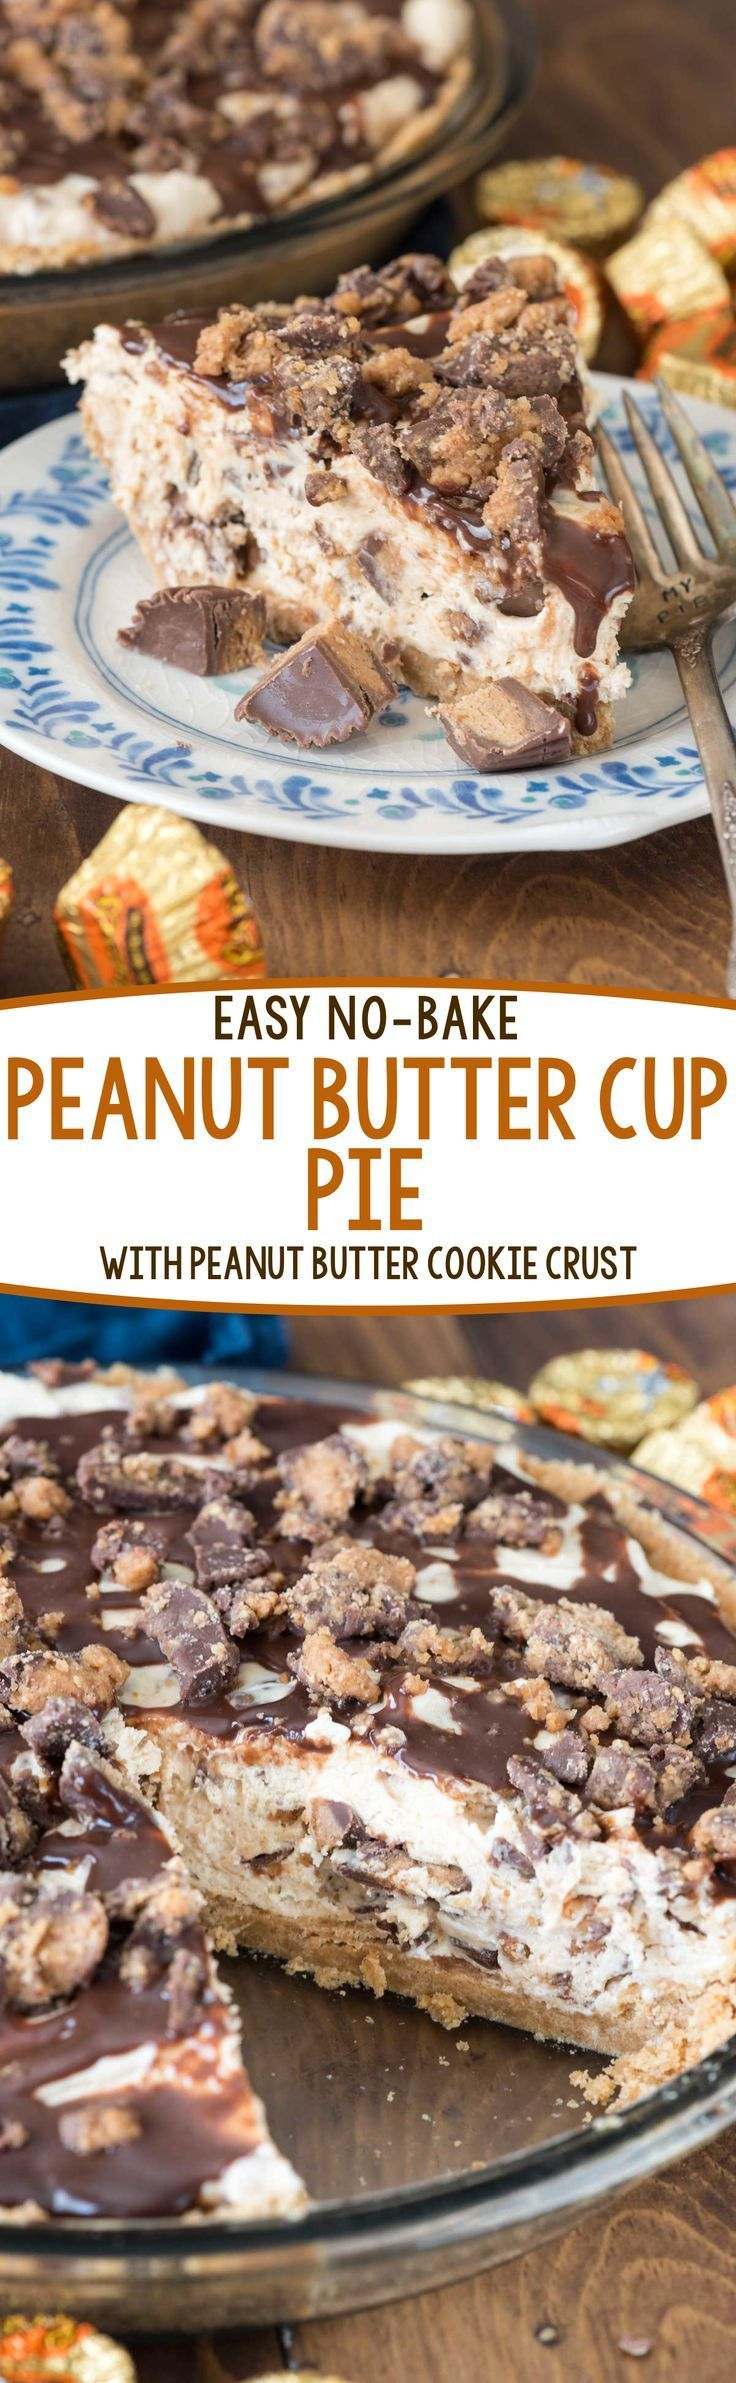 Food Photography: No Bake Peanut Butter Cup Pie Food Photography: No Bake Peanut Butter Cup Pie